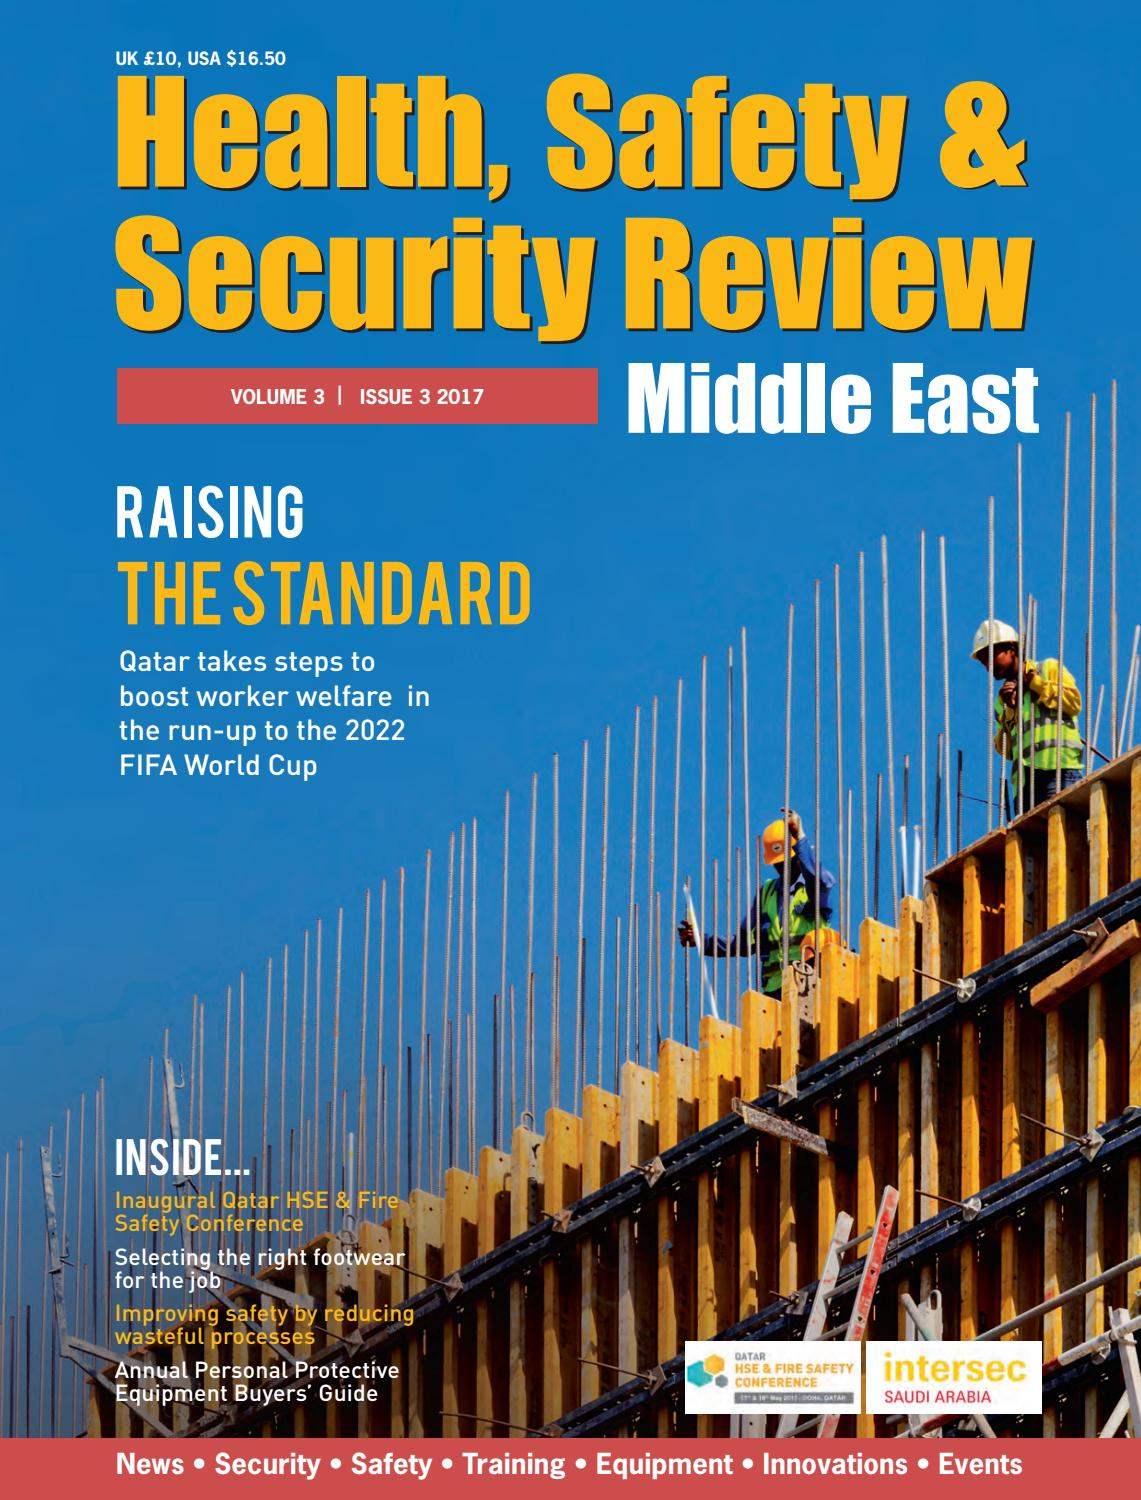 Health, Safety & Security Review issue 3 2017